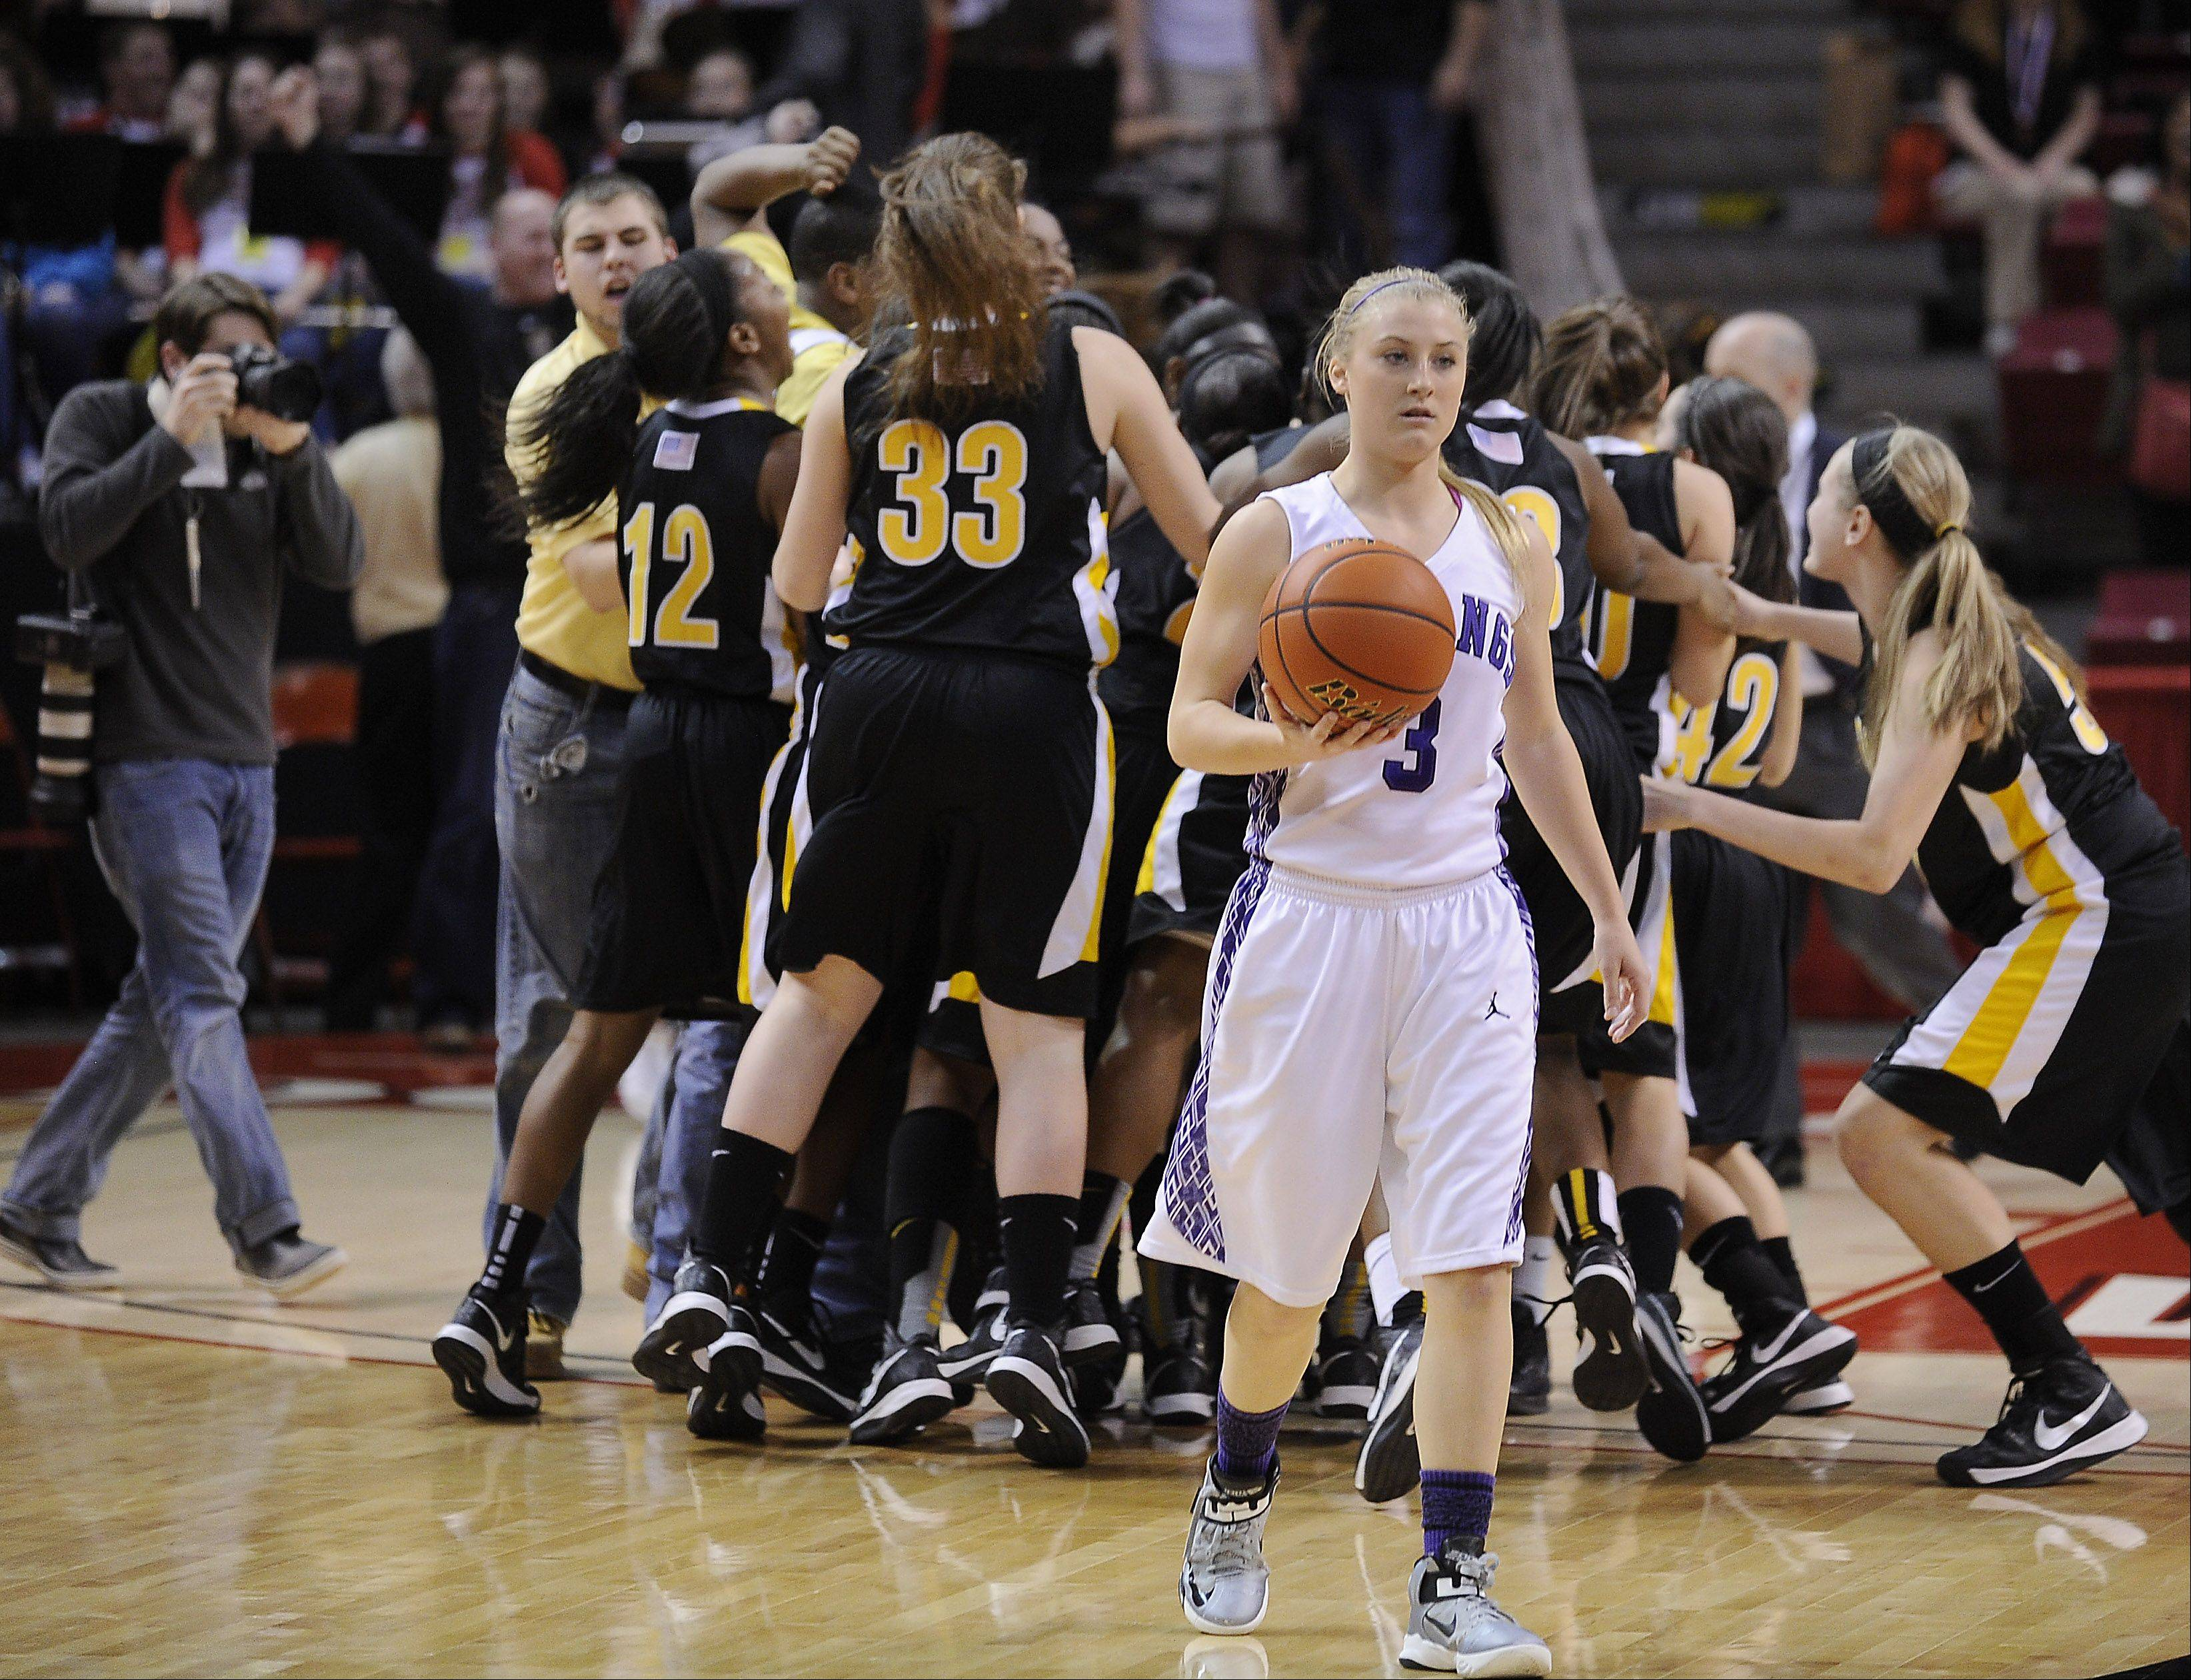 Images: Girls Class 4A basketball championship game